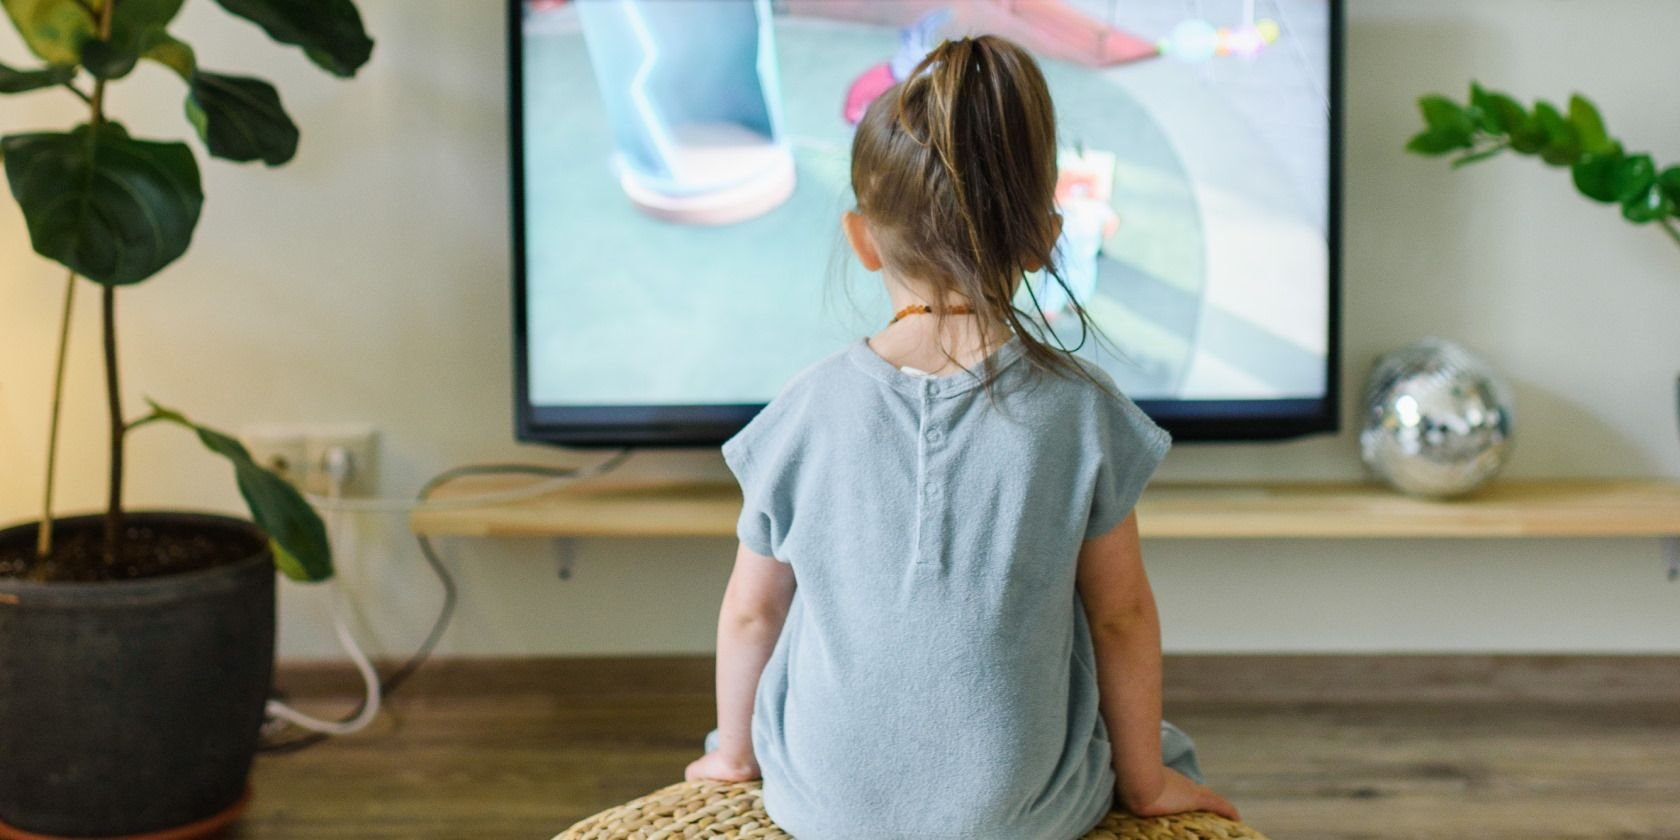 Can't See the Movie? Here's How You Clean a Flat Screen TV